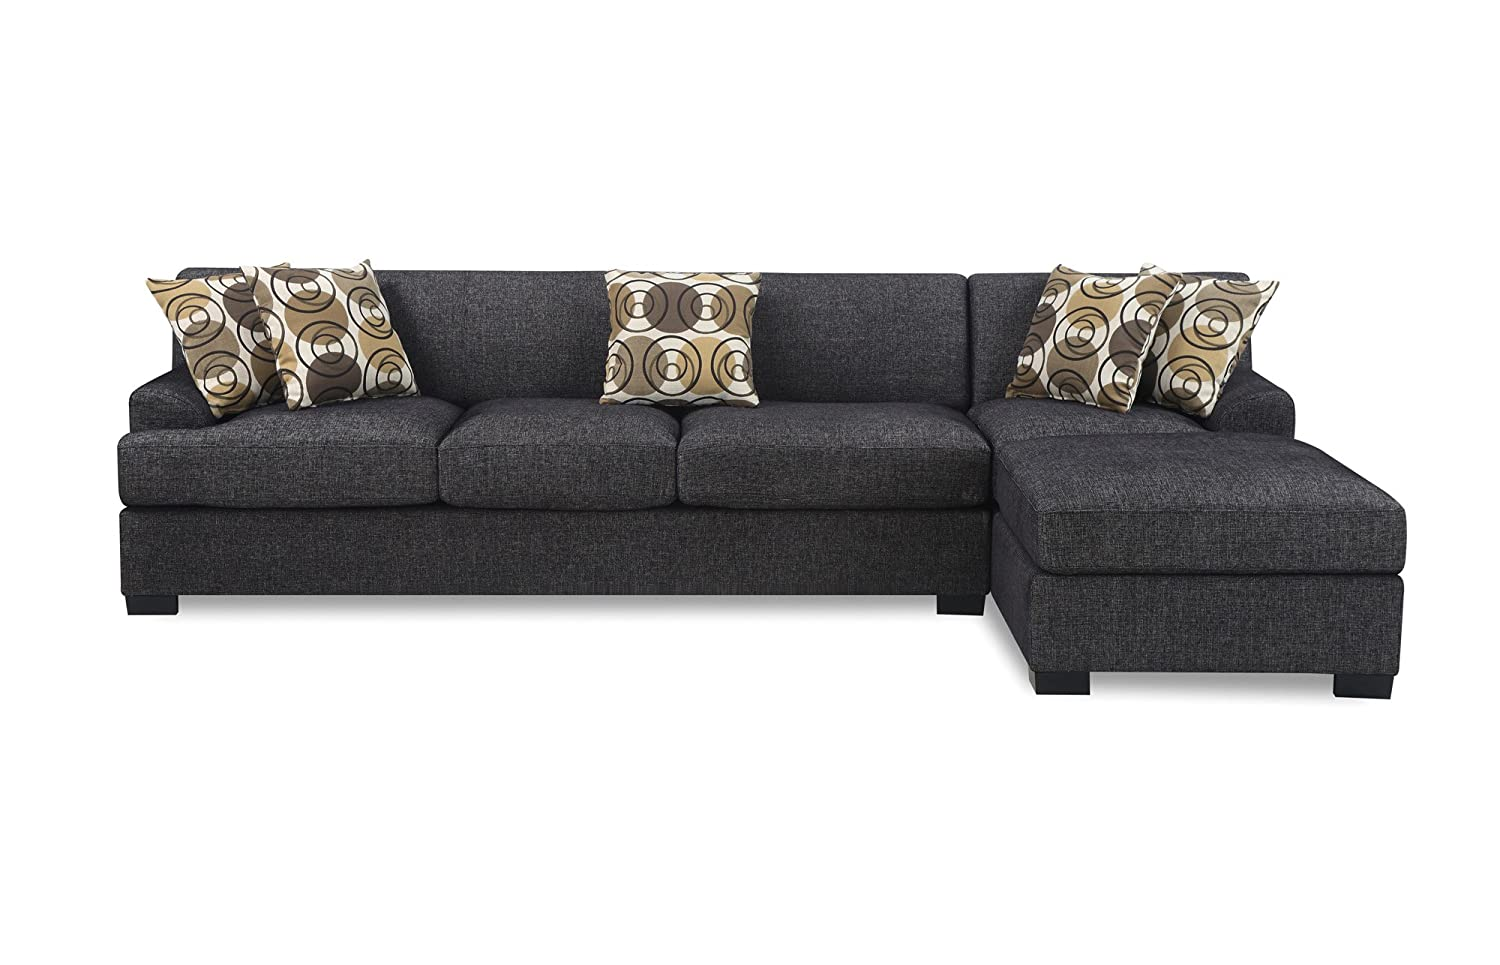 Most comfortable sectional sofa - Top 6 Comfortable Sectional Sofas Table